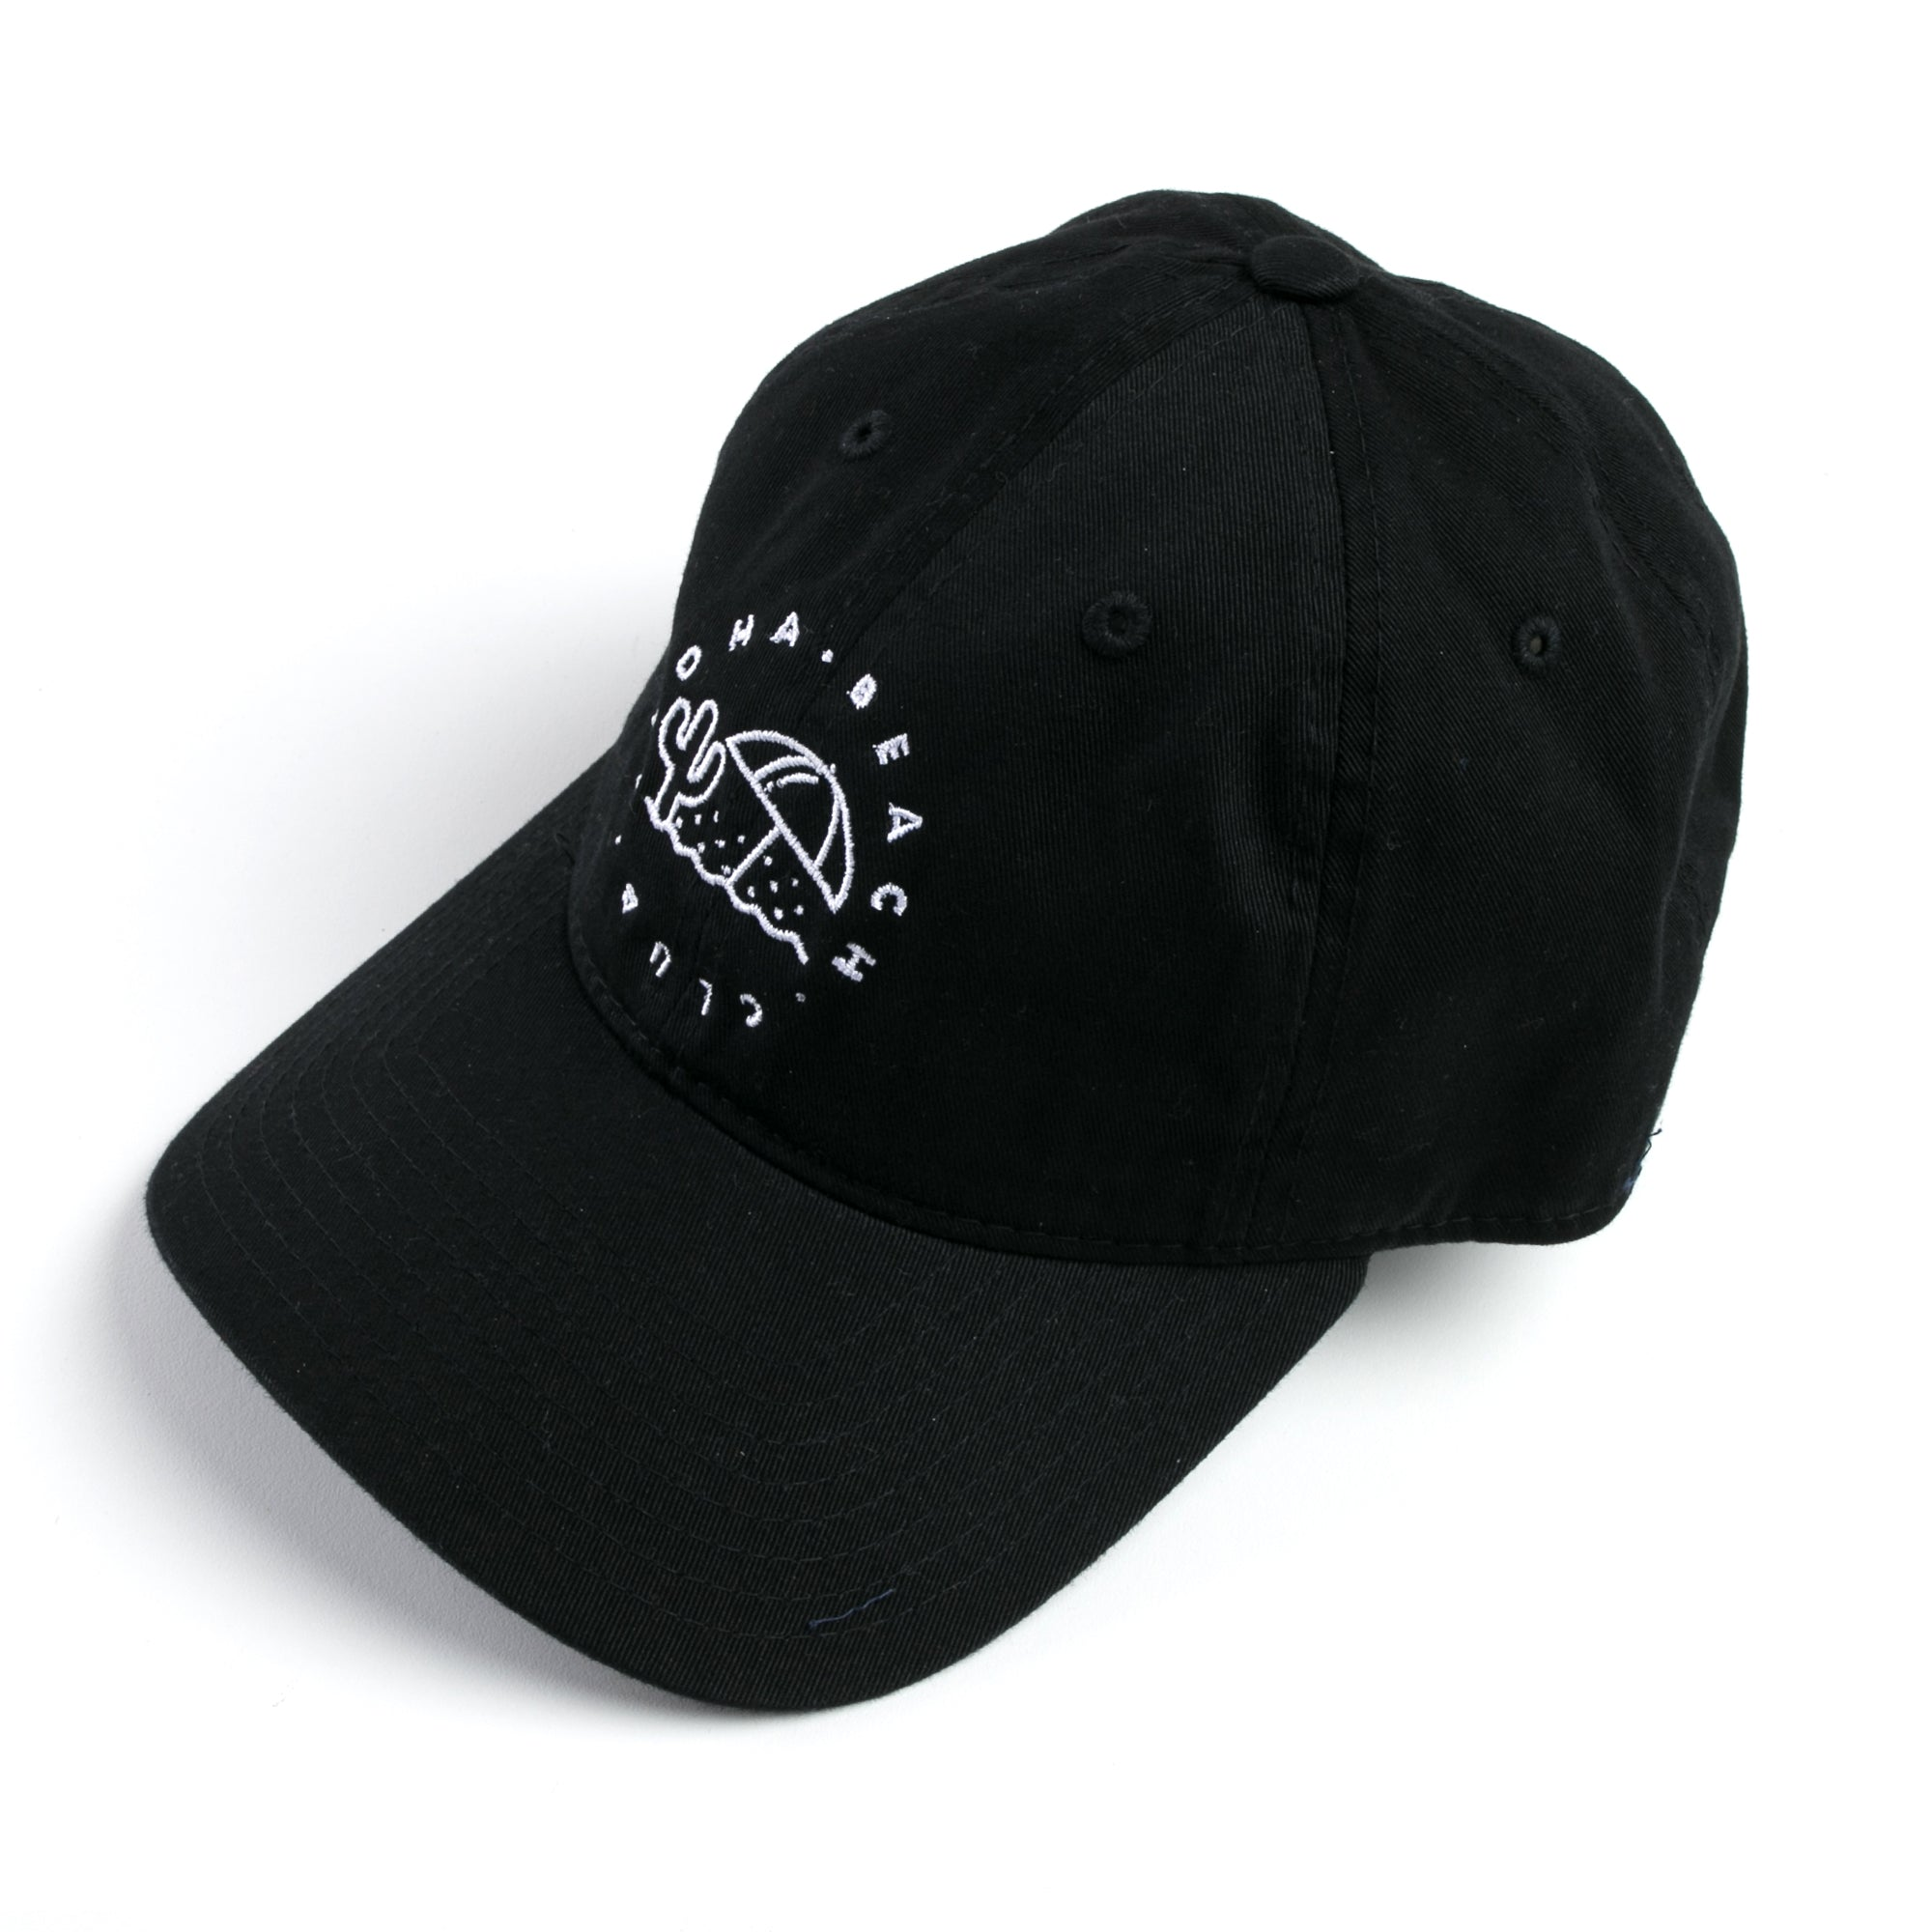 Aloha Beach Club Trops Hat in Black